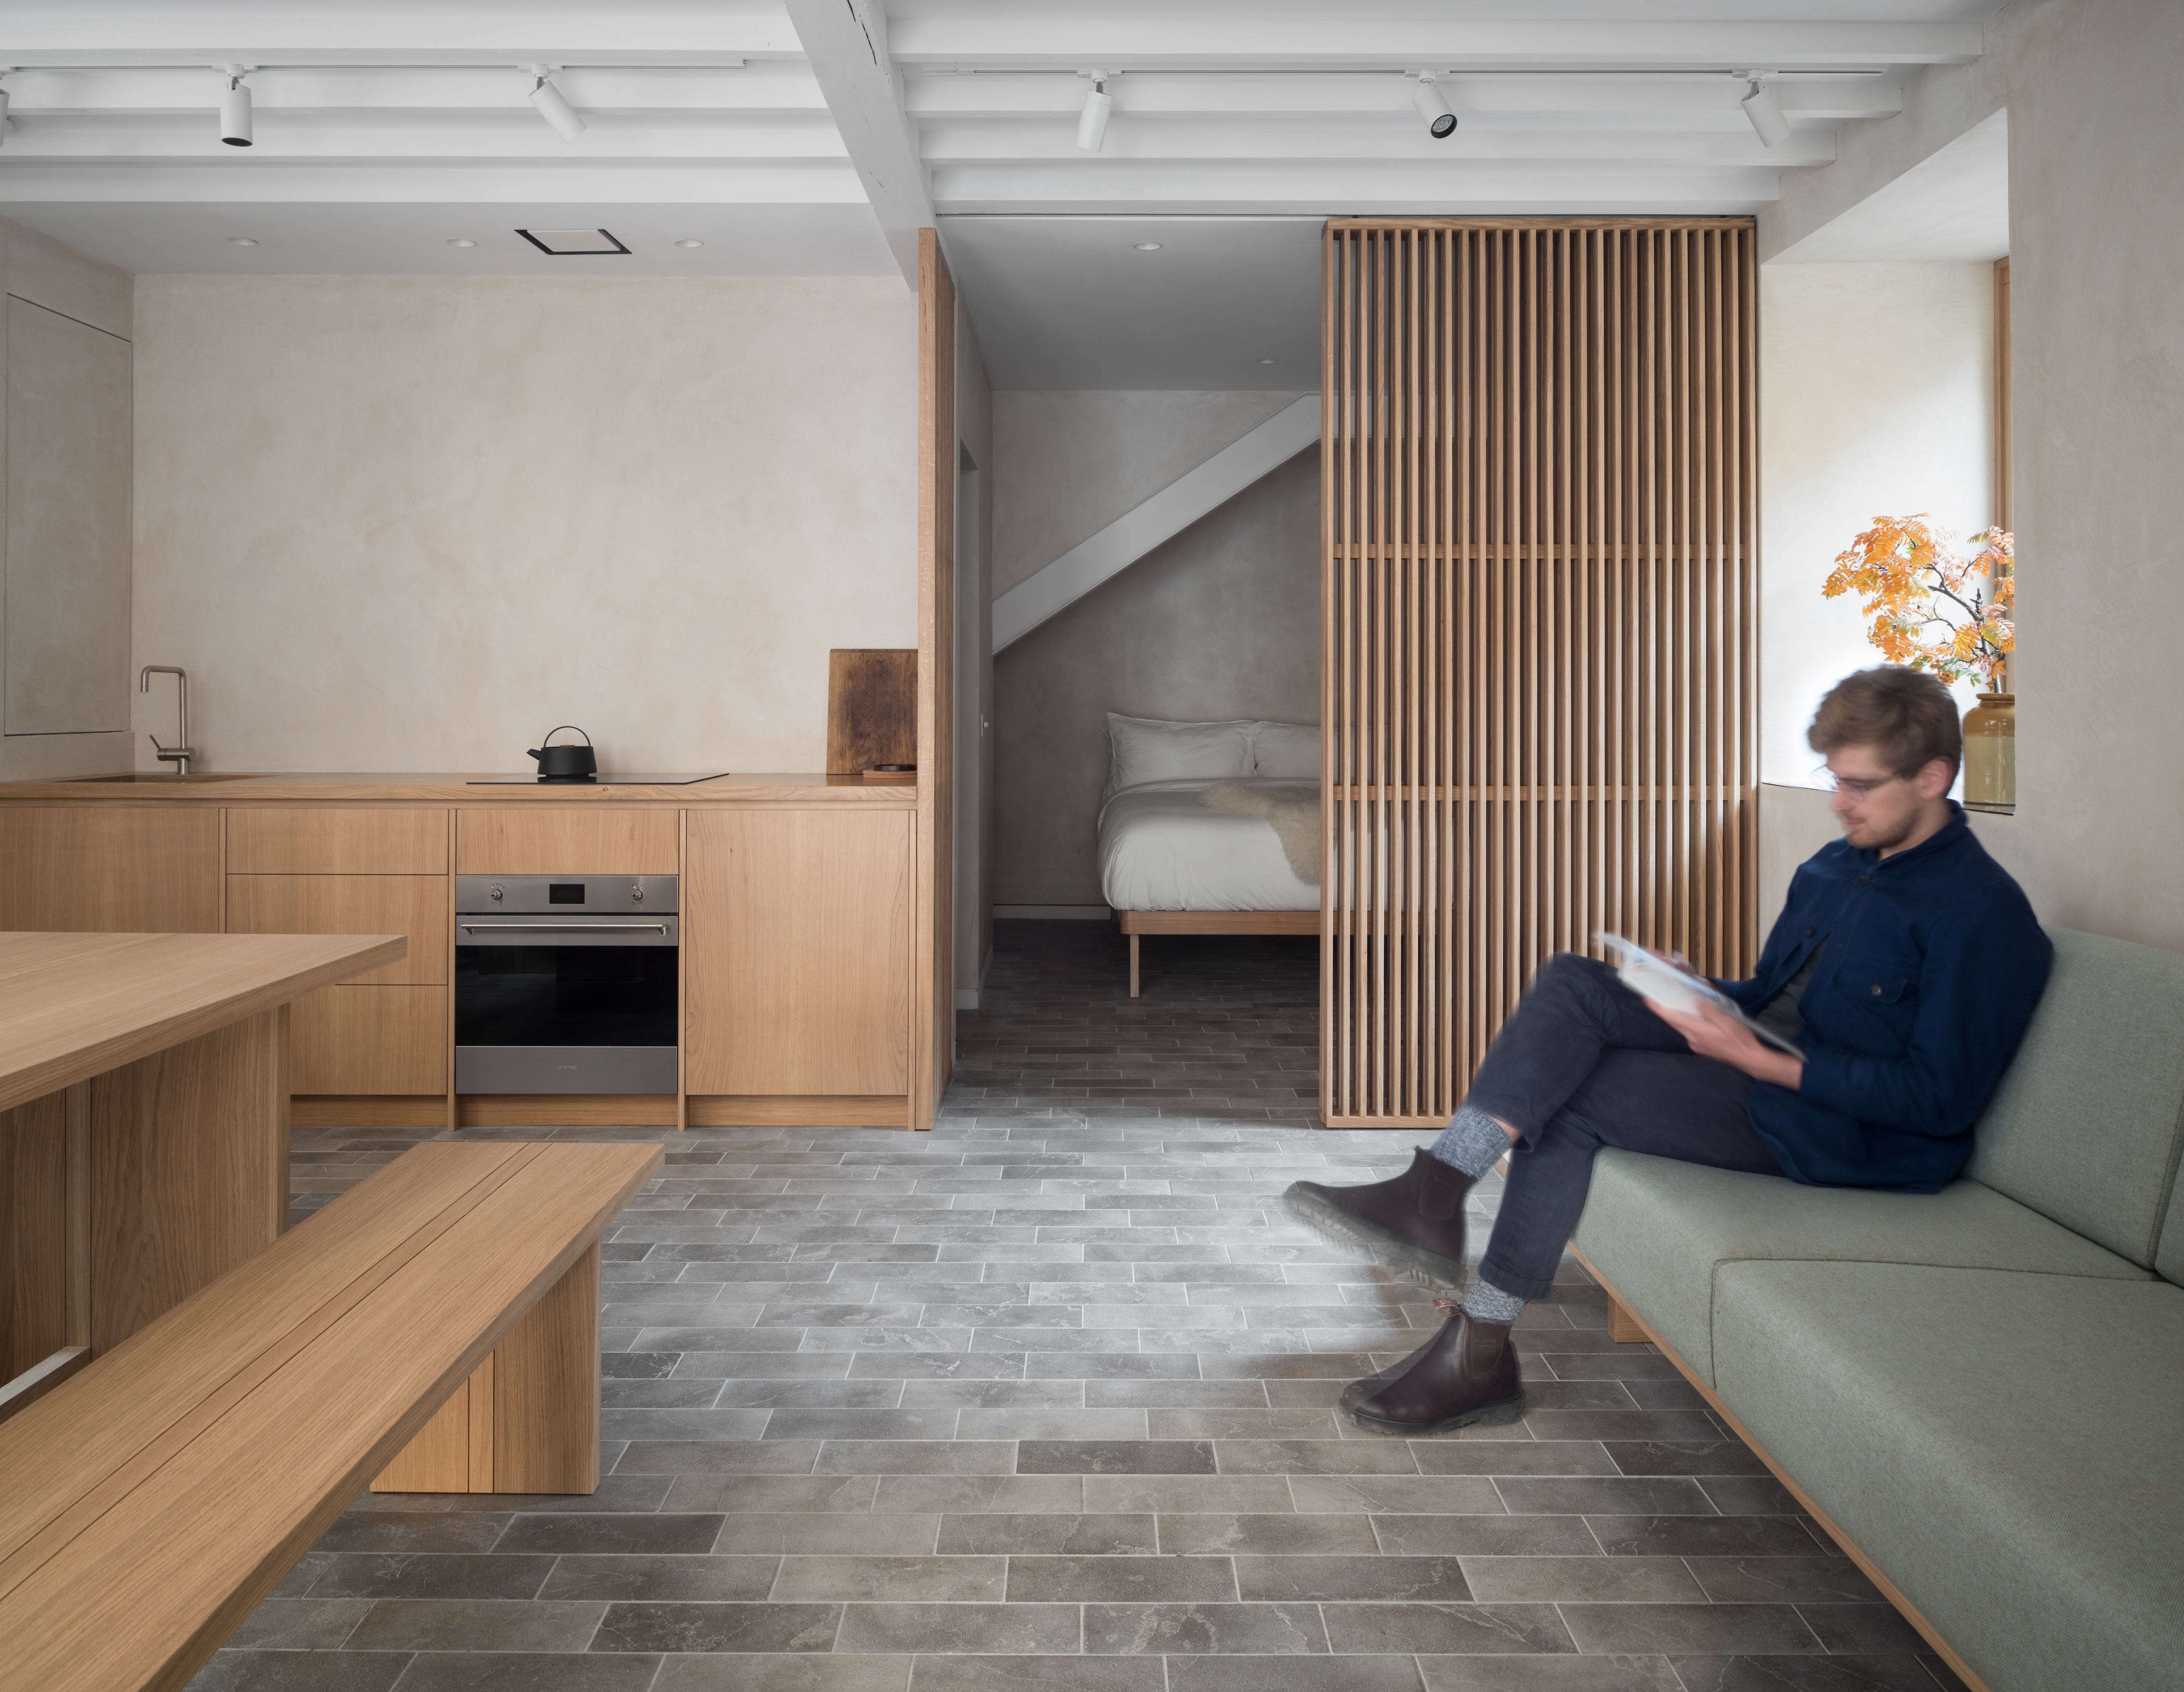 Minimalist and Miniature: A Garage Converted into a Quiet, Compact Apartment - The Organized Home